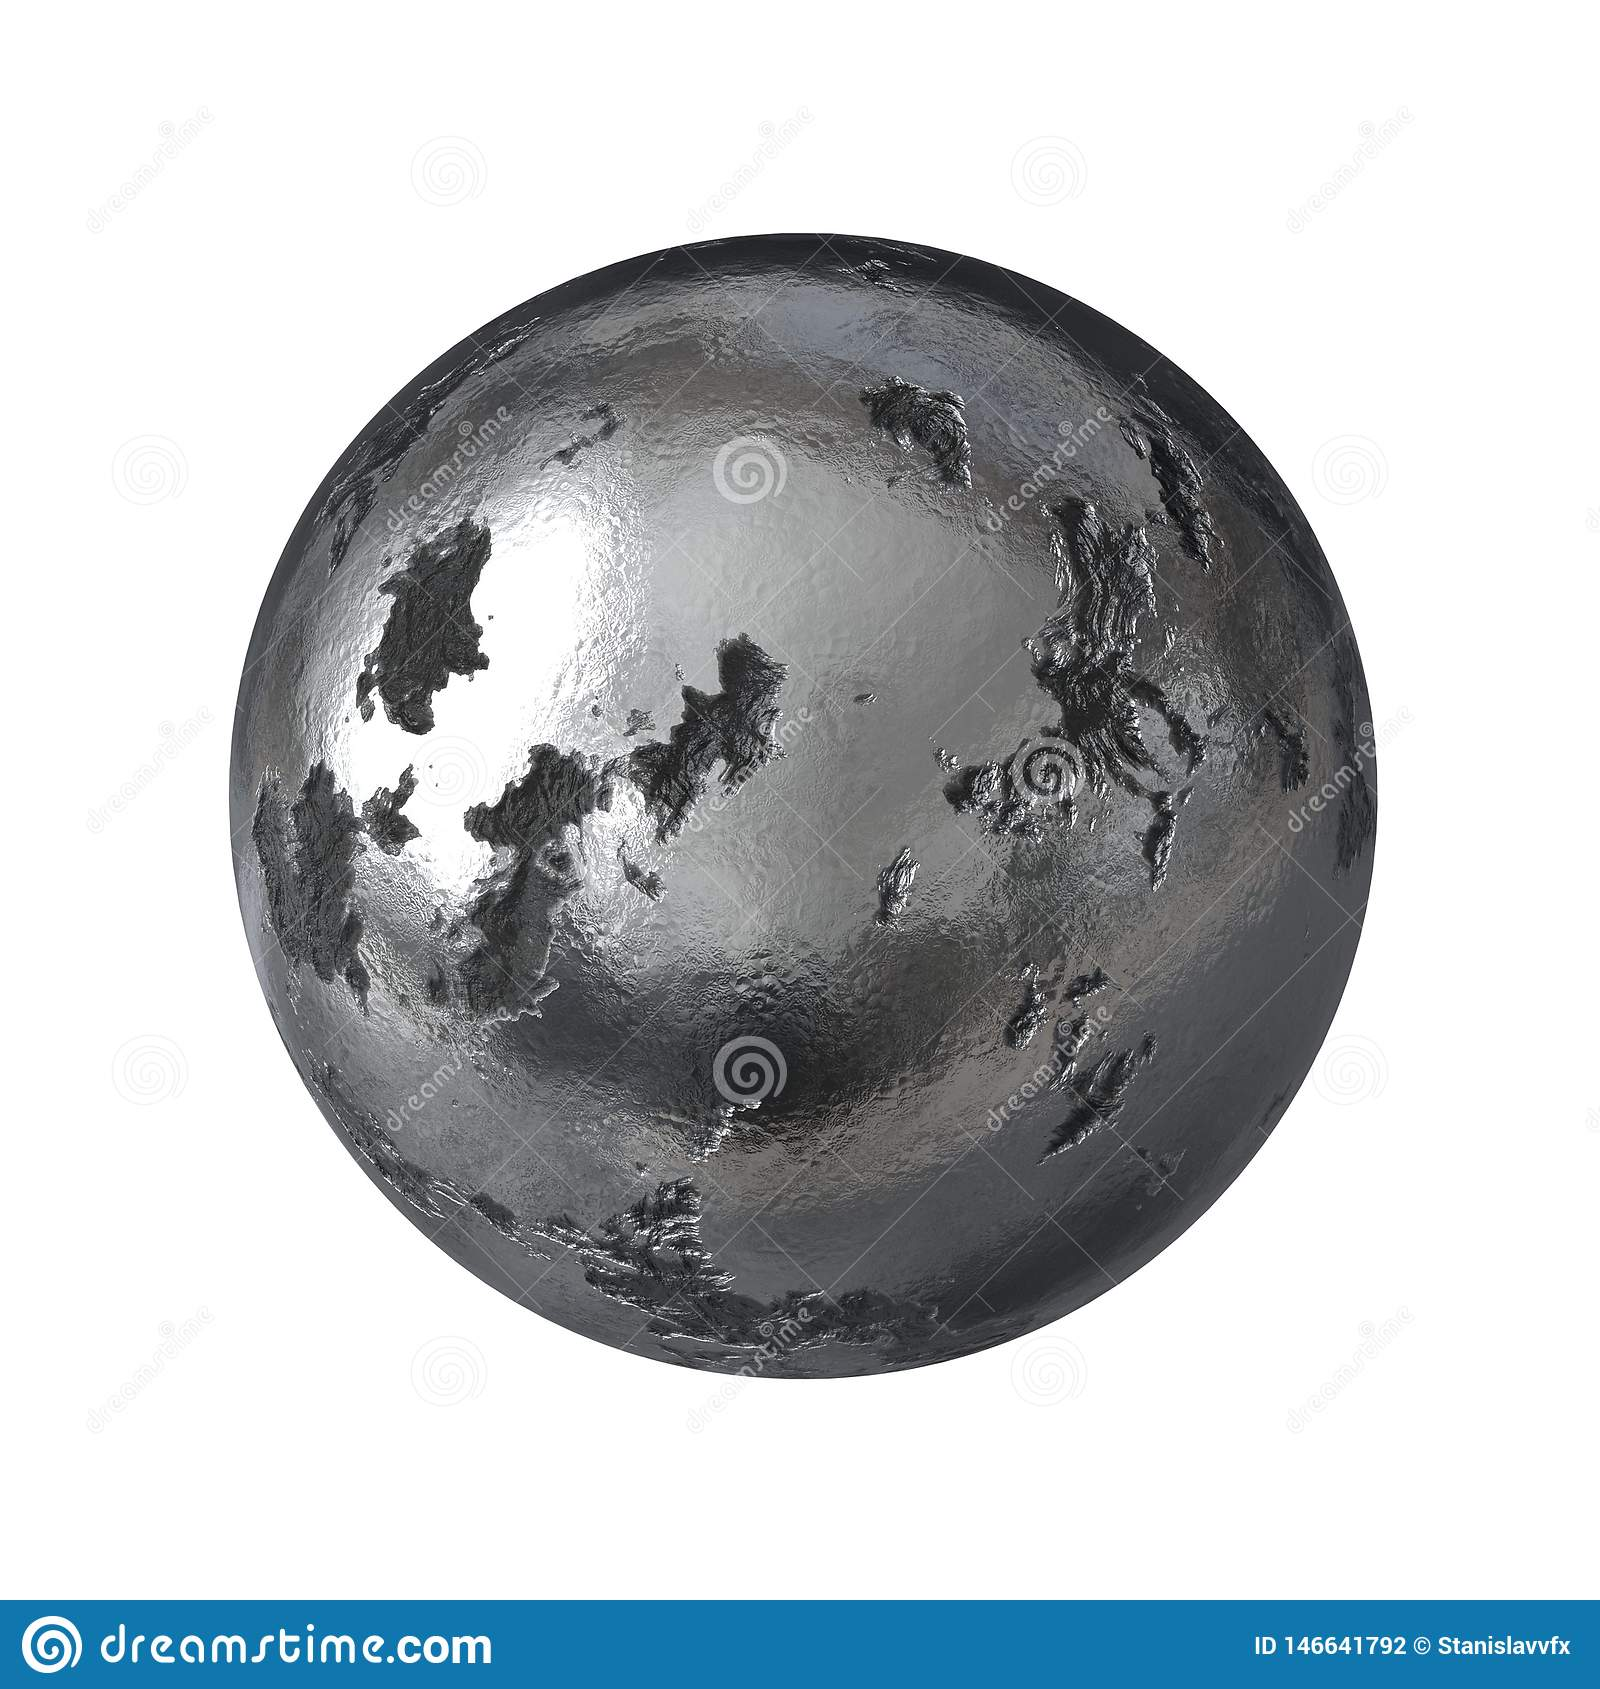 Damaged Metal Sphere isolated on white background